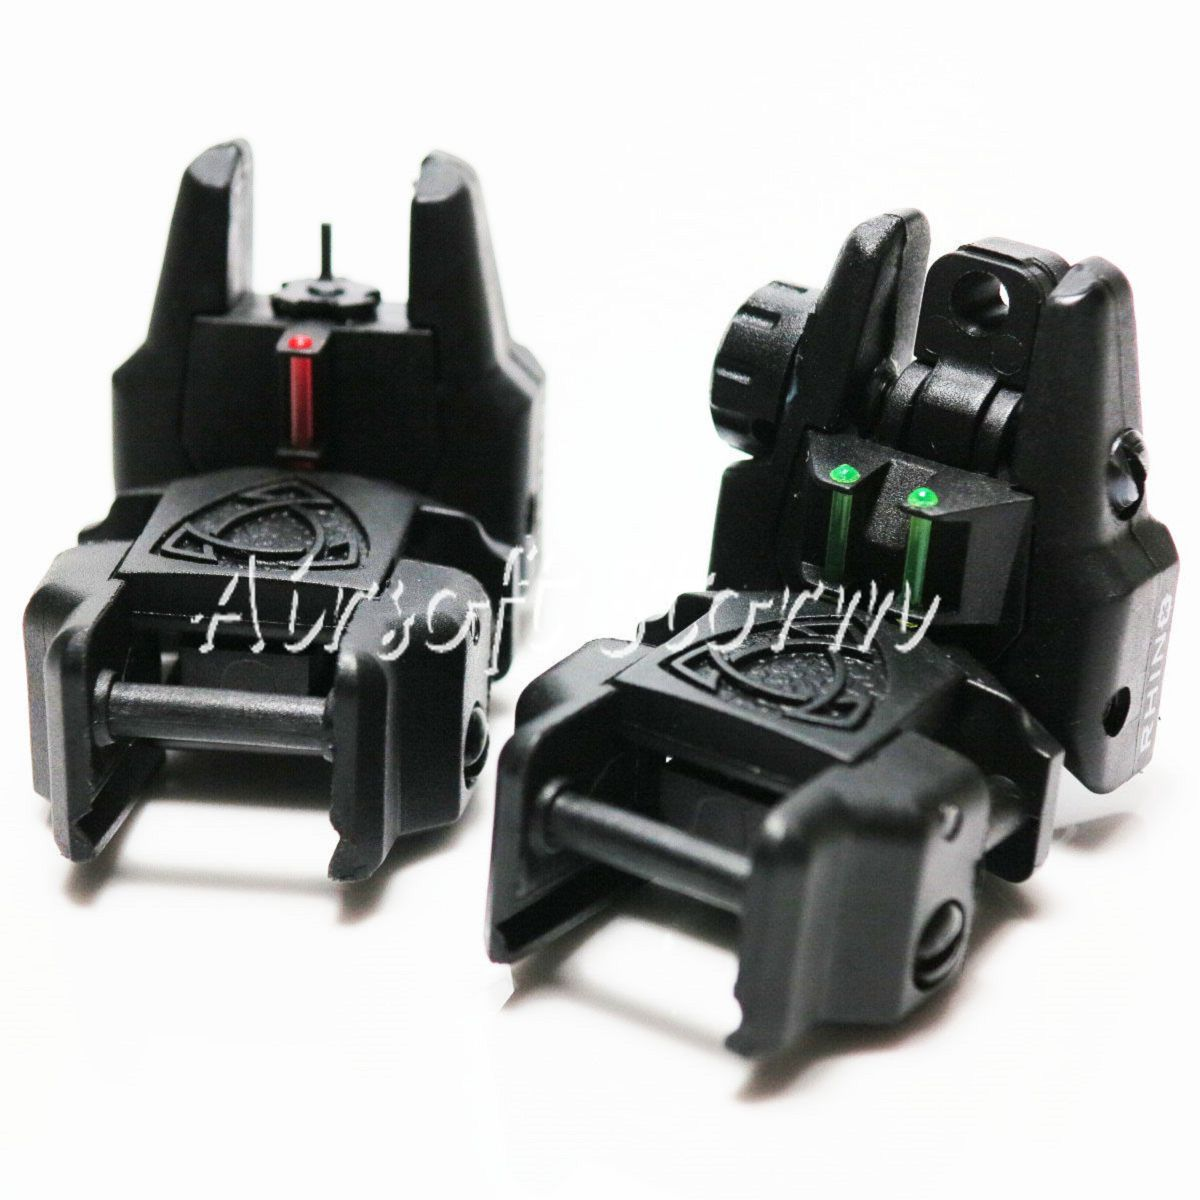 Airsoft AEG Gear APS Rhino Front Rear Sight with Fiber Optic Set Black Green/Red